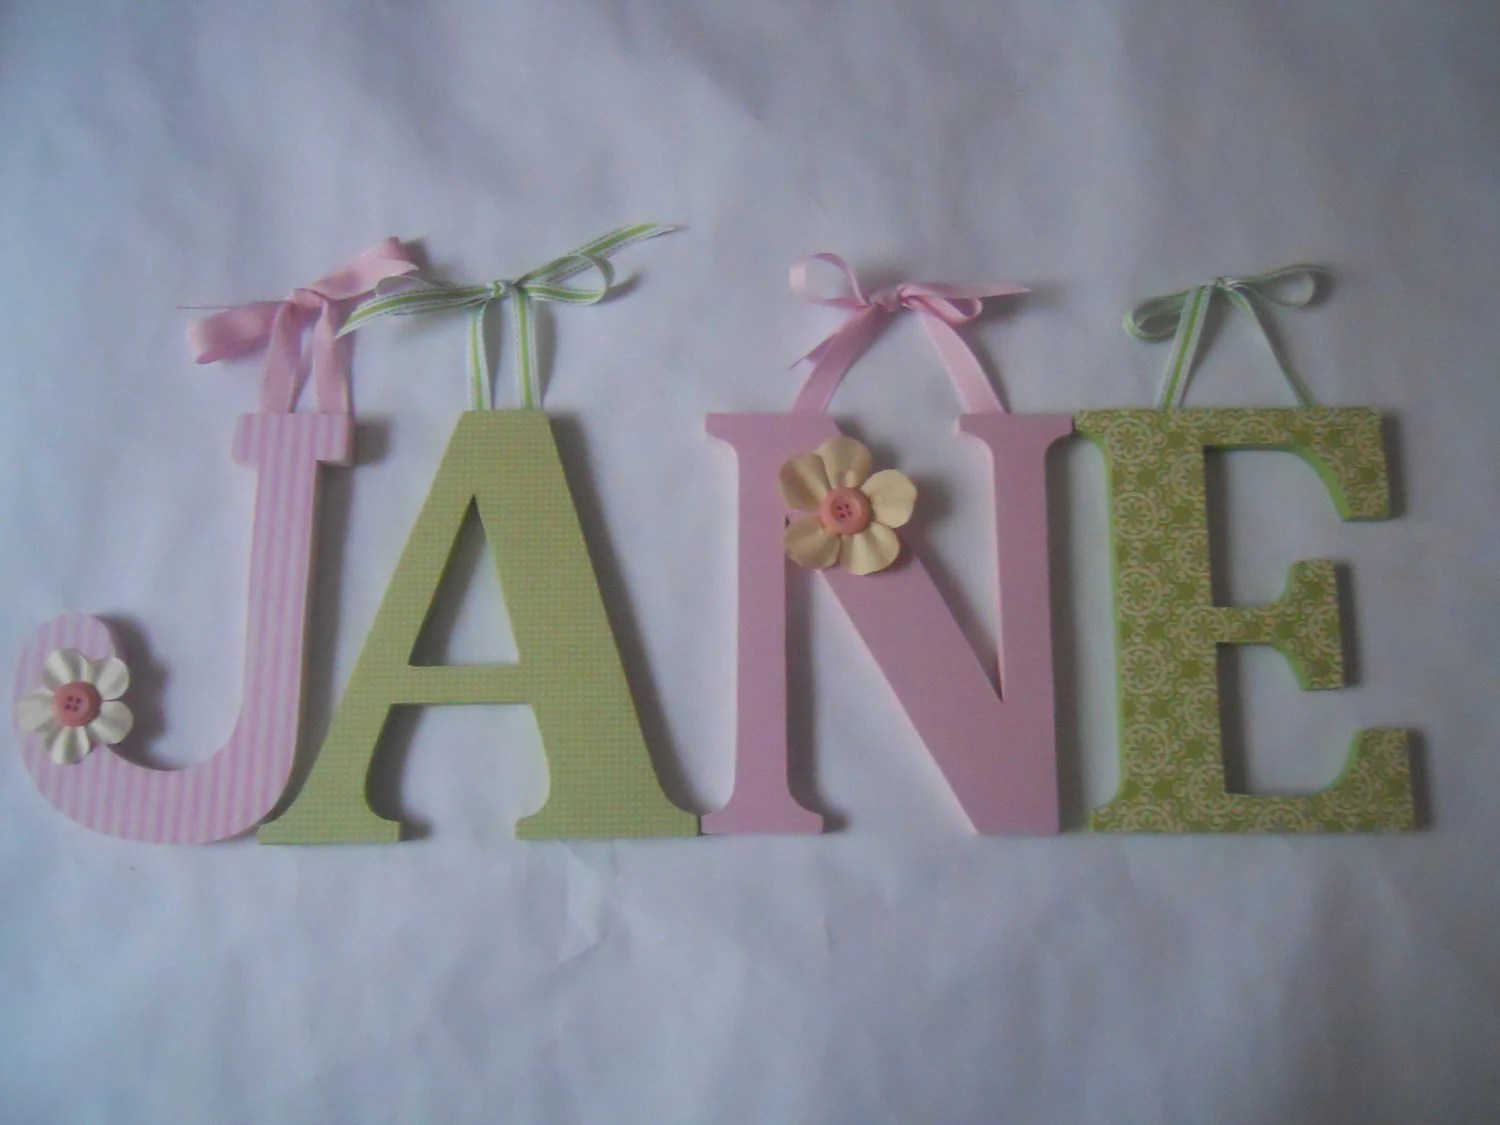 Wooden Letters For Nursery AS IS Spelling JANE In Pink And